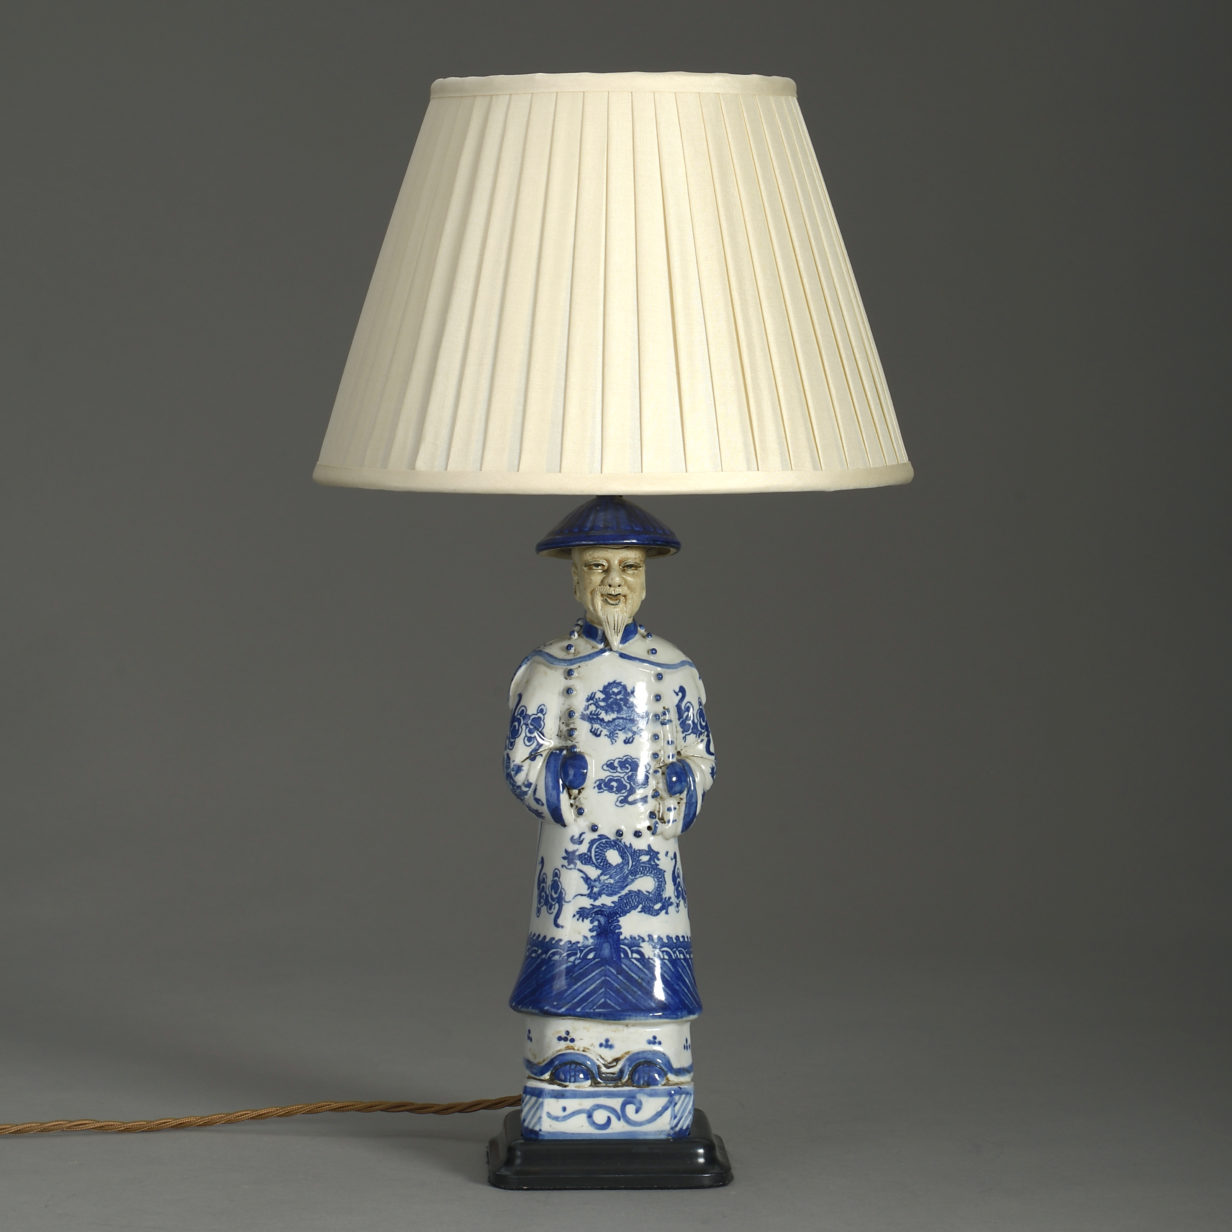 Chinaman Lamp